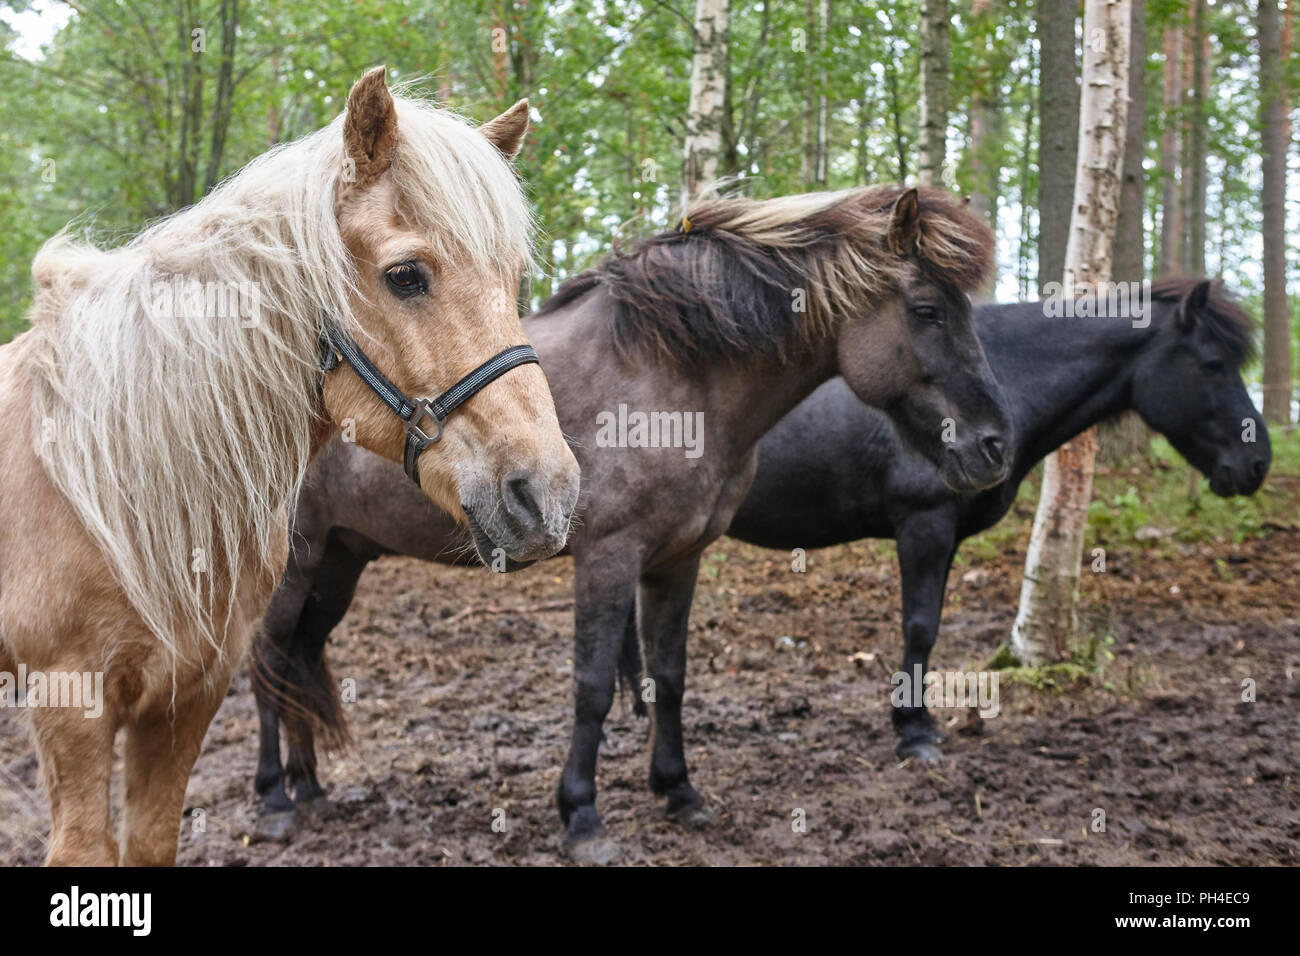 Horses in a Finland forest landscape. Animal background. Horizontal Stock Photo